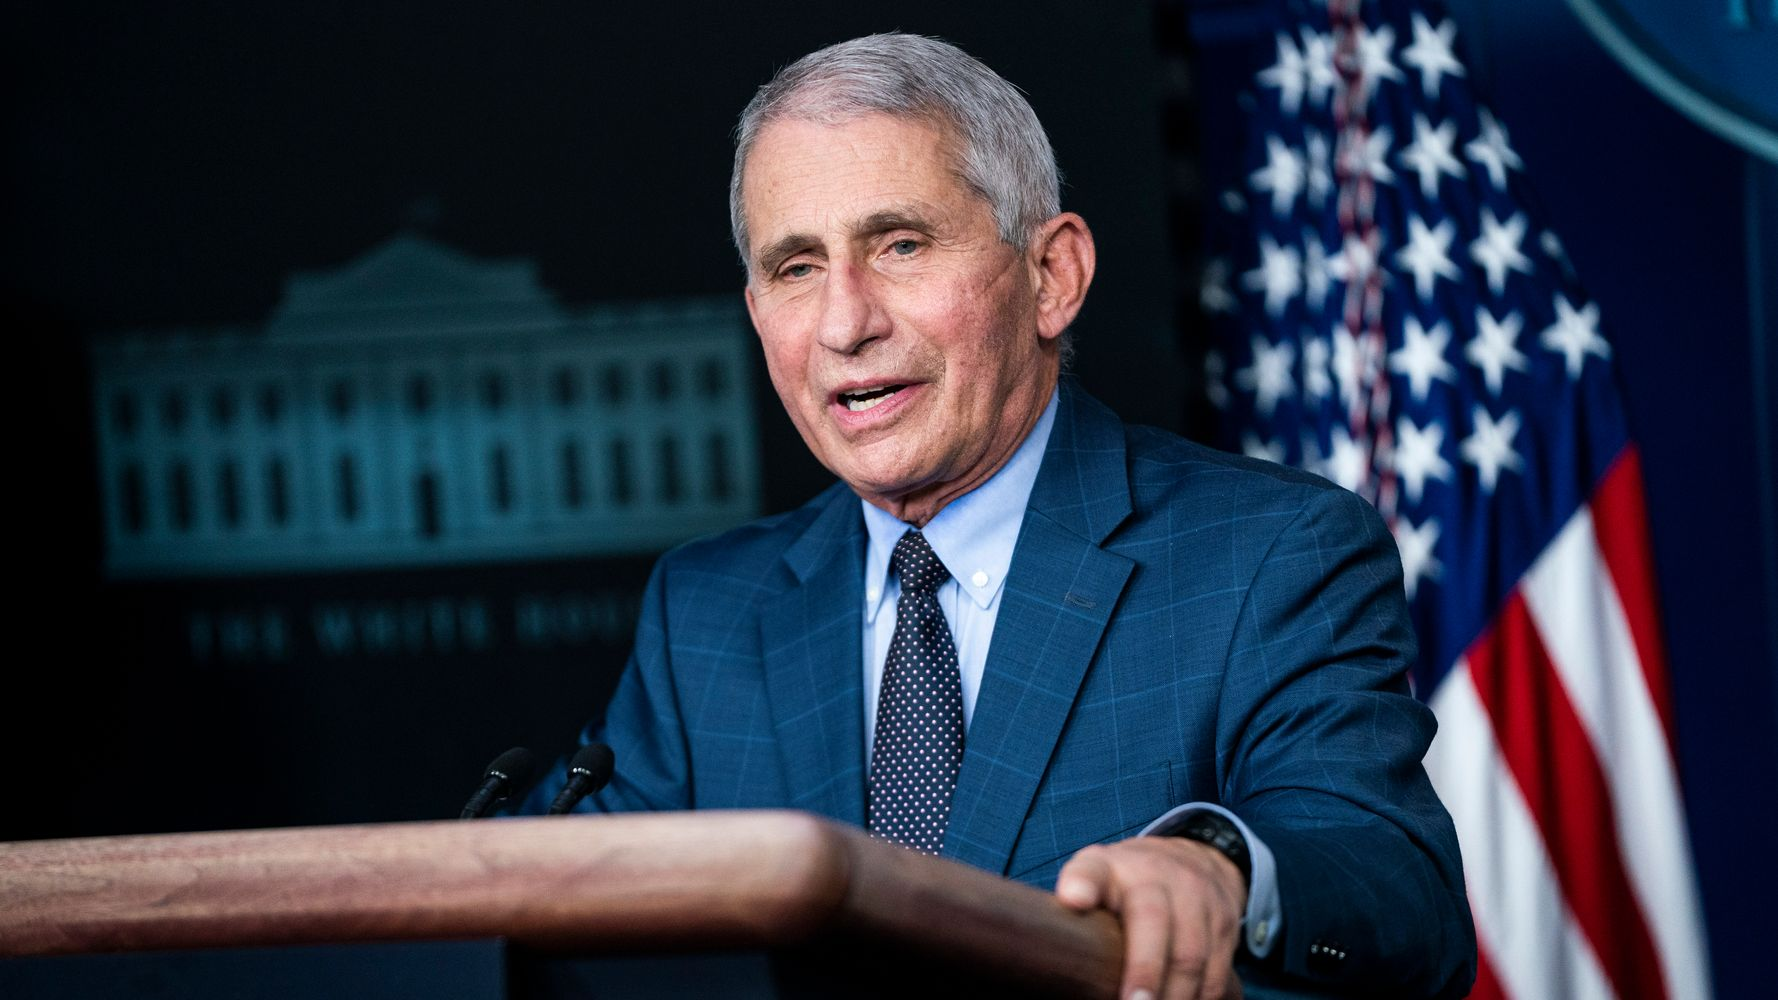 Anthony Fauci Backtracks After Claiming UK 'Rushed' COVID-19 Vaccine Approval